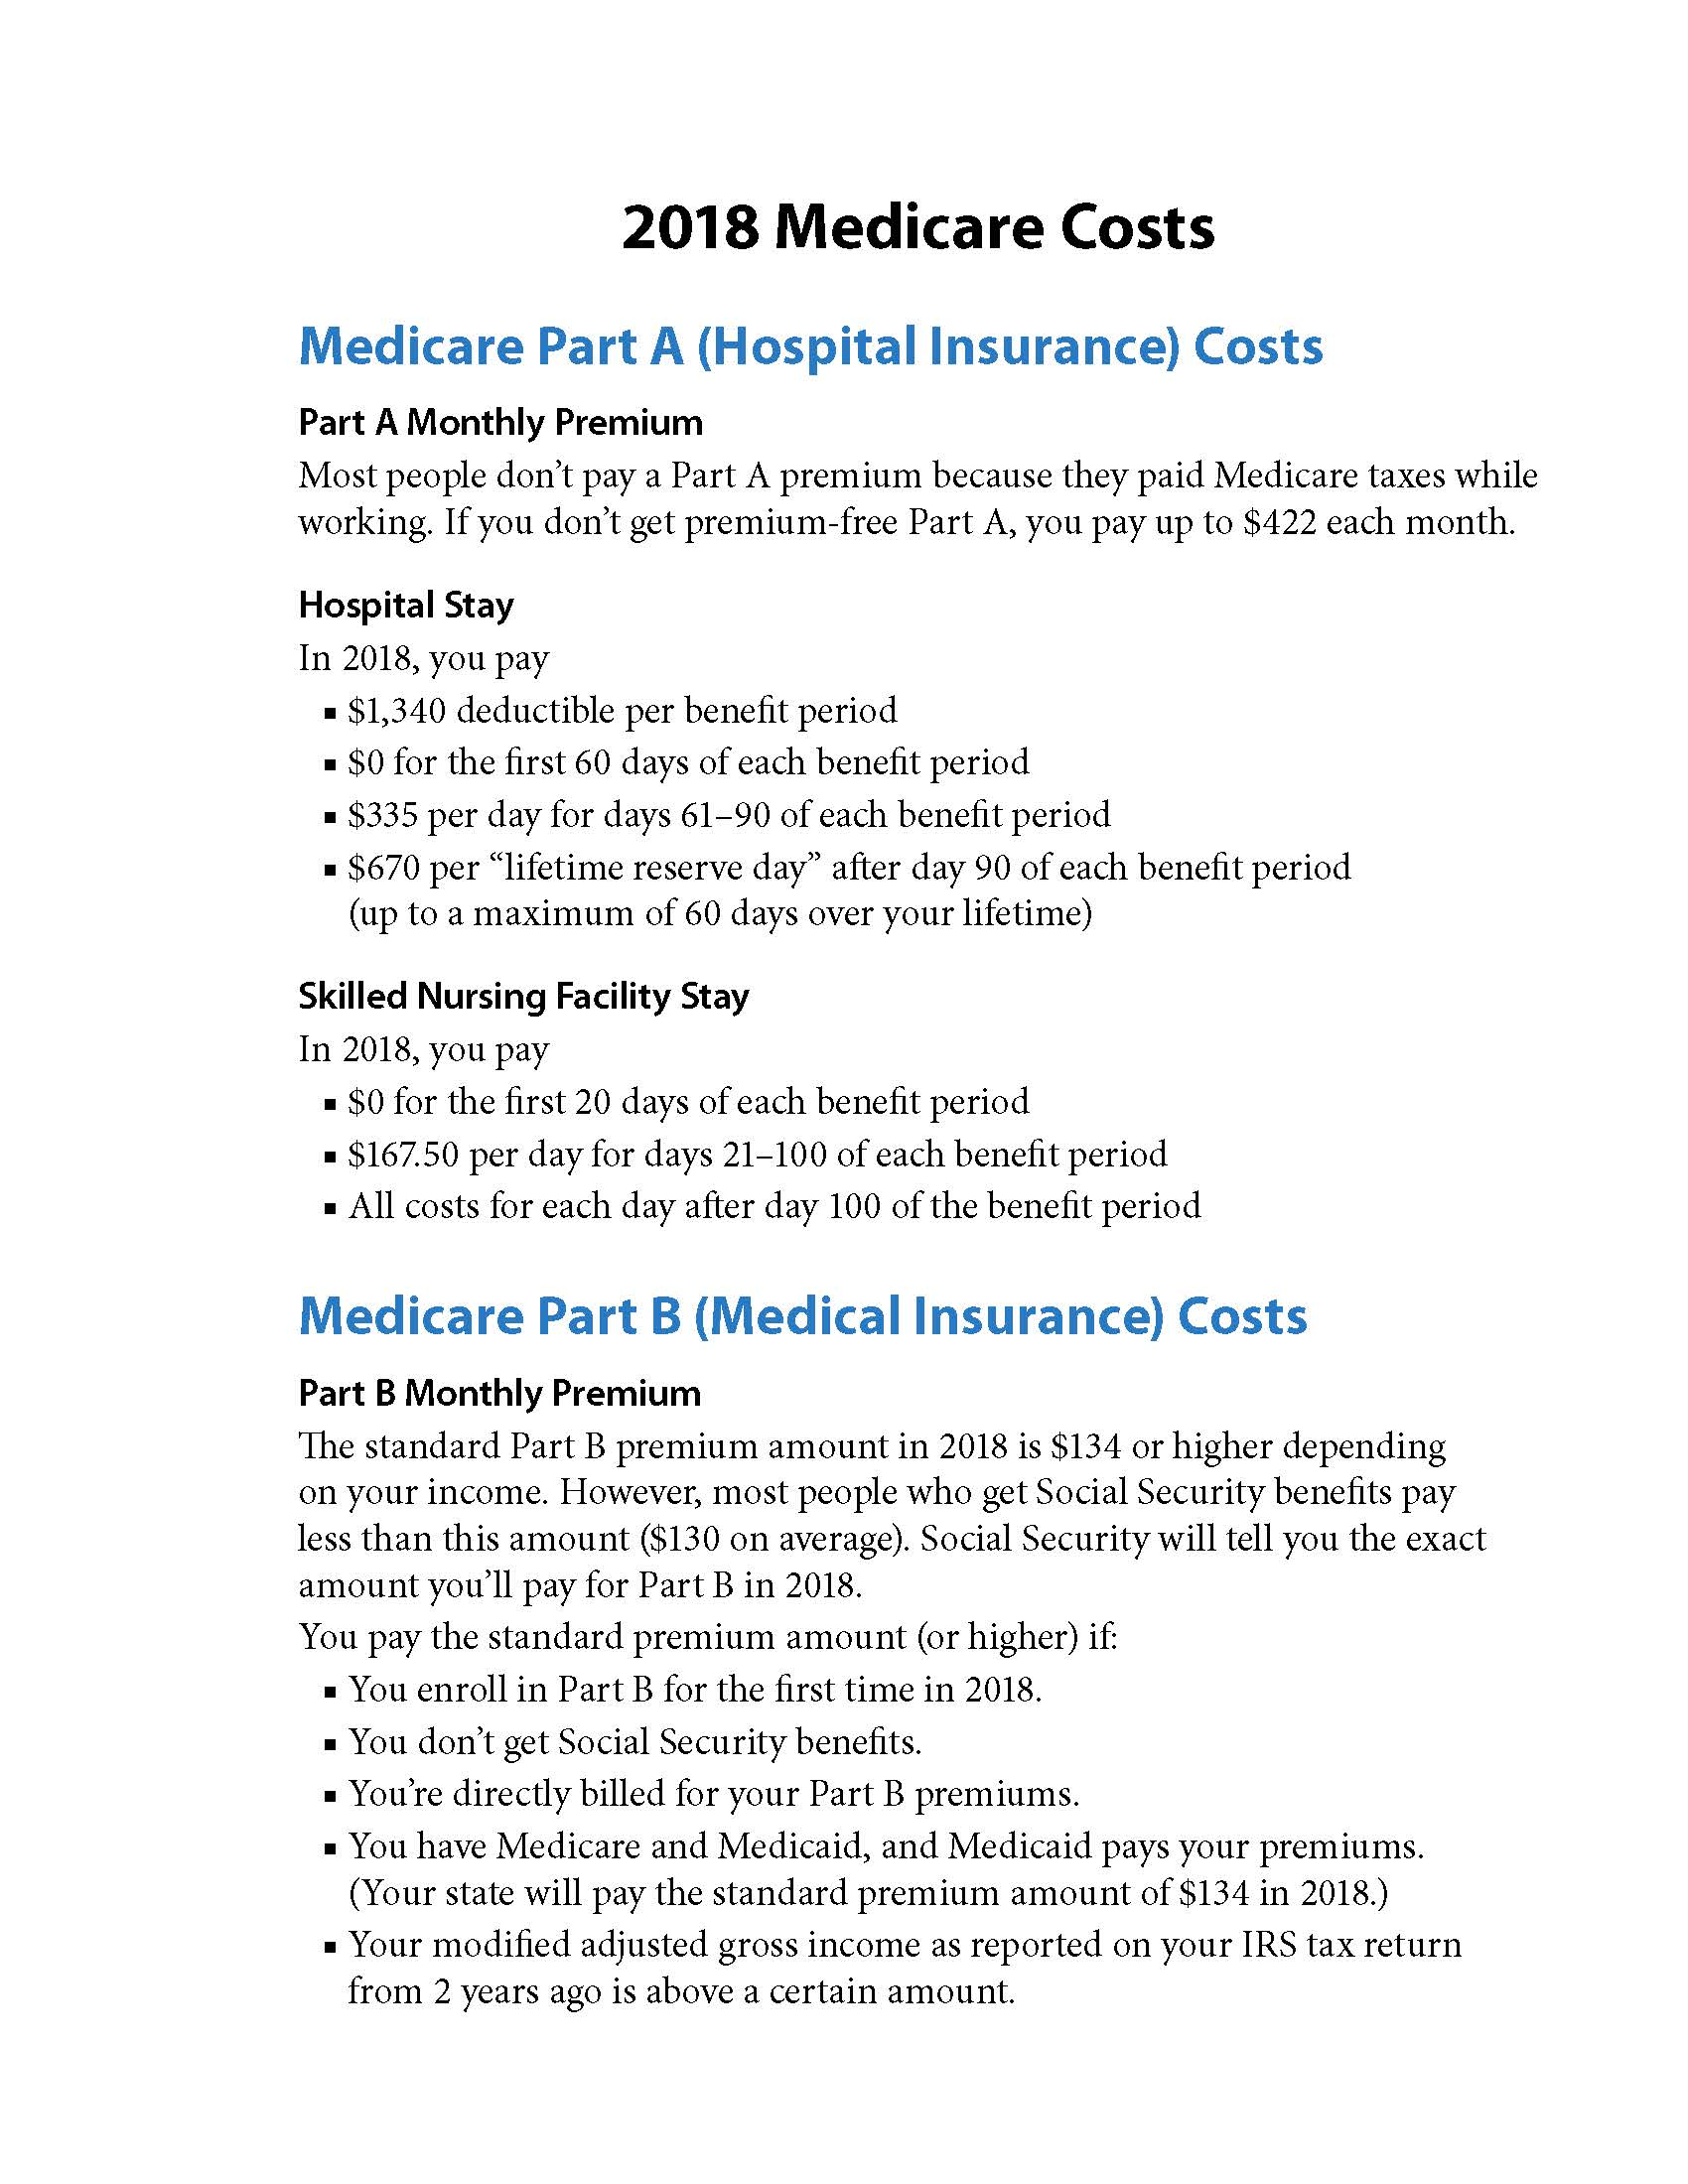 Medicare Costs thumbnail